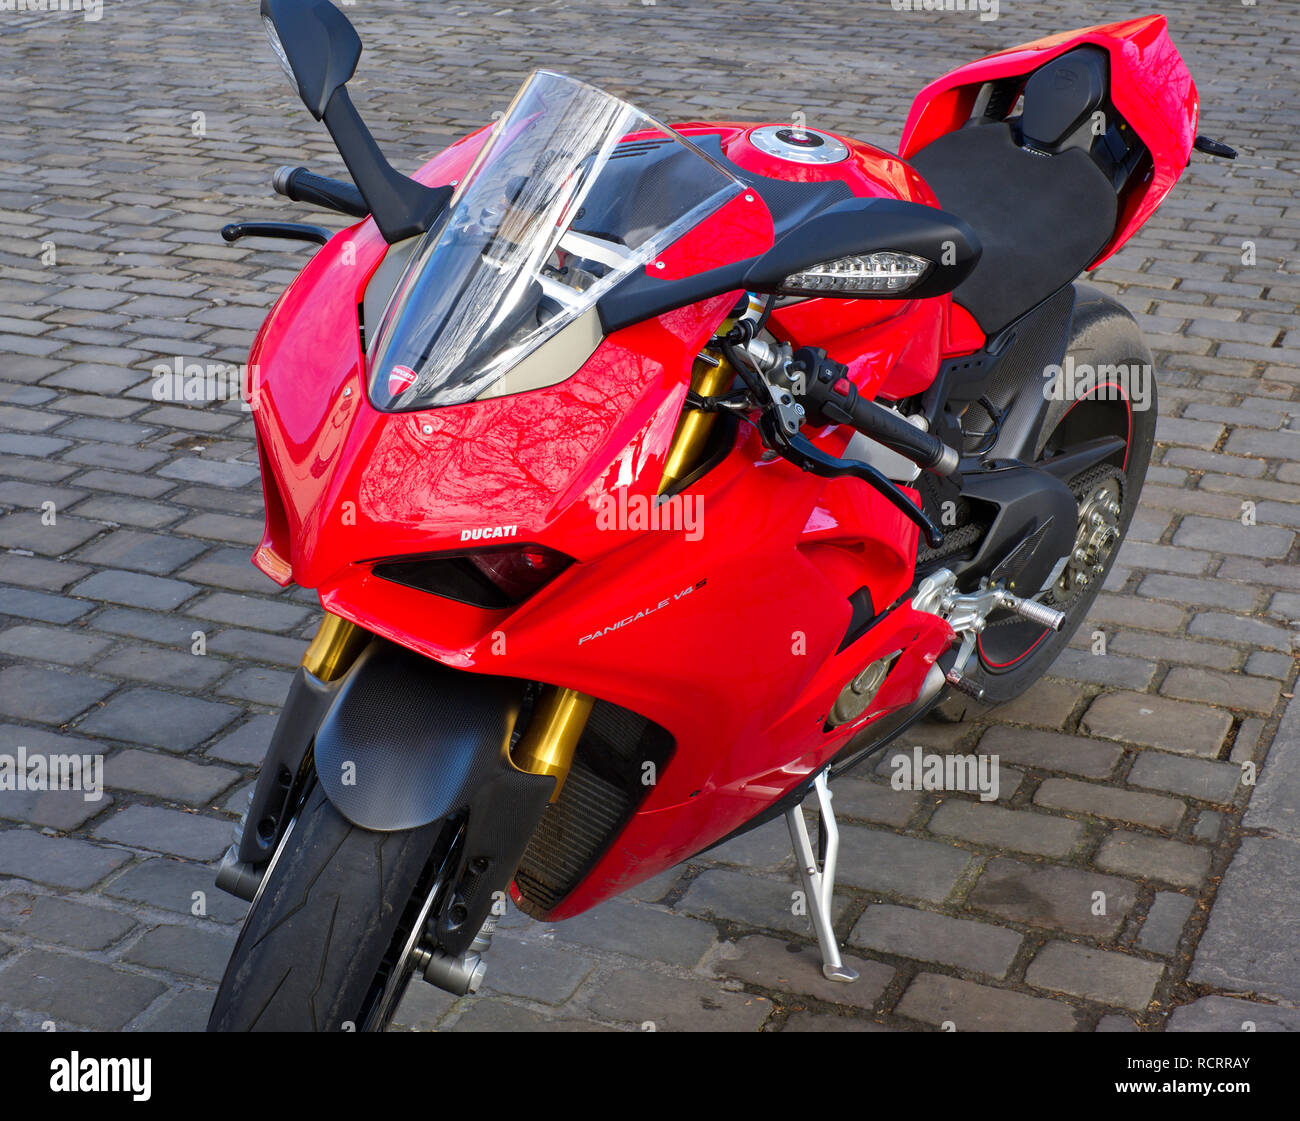 A parked 2018 Ducati Panigale V4 S Superbike. - Stock Image